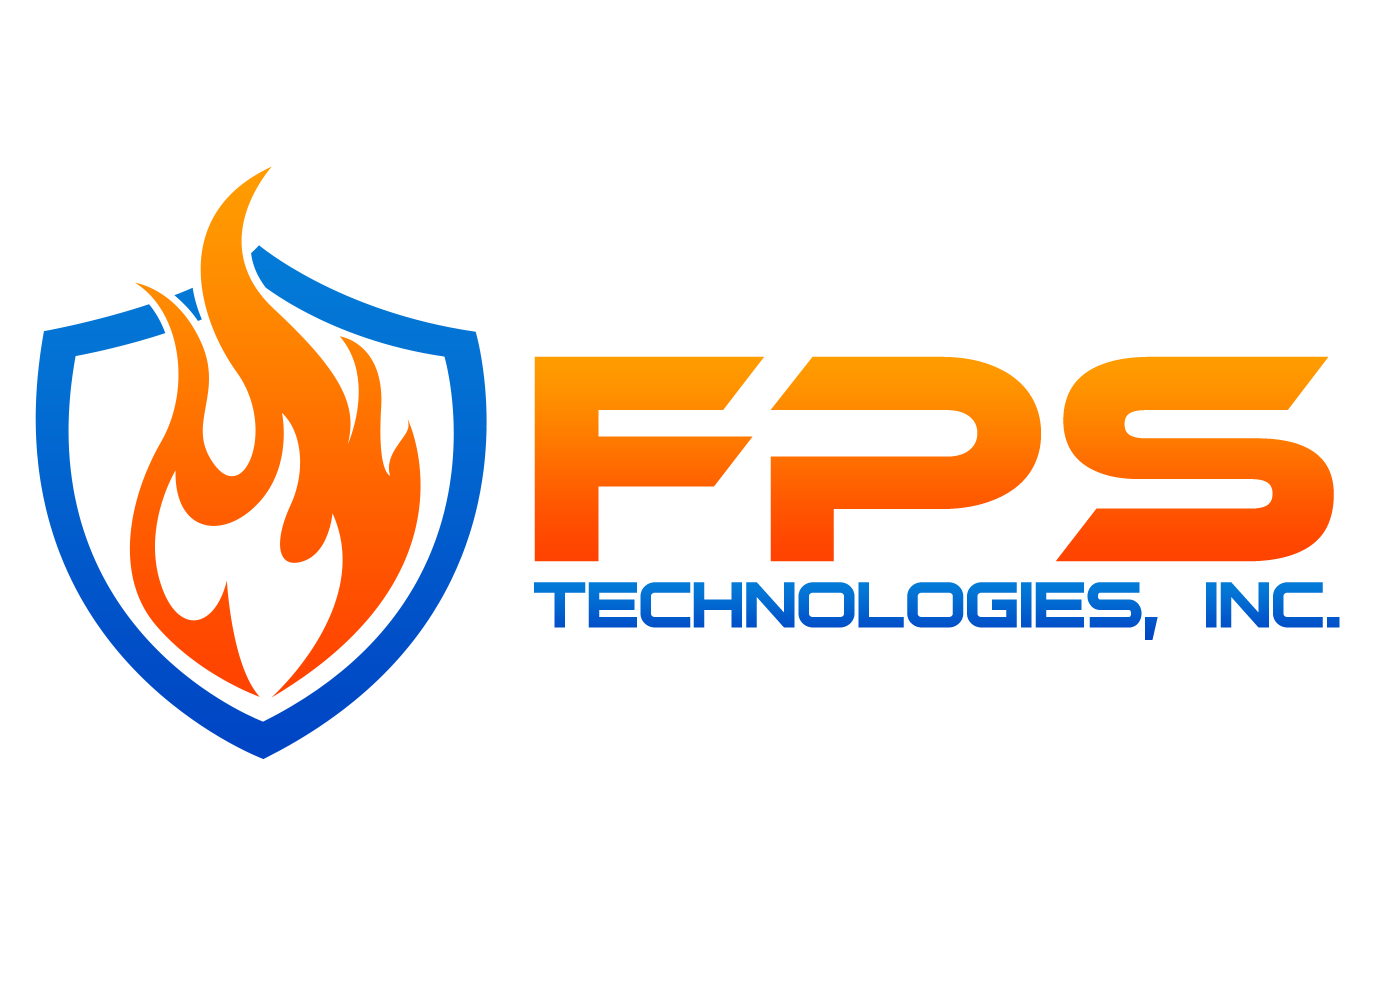 FPS-technologies